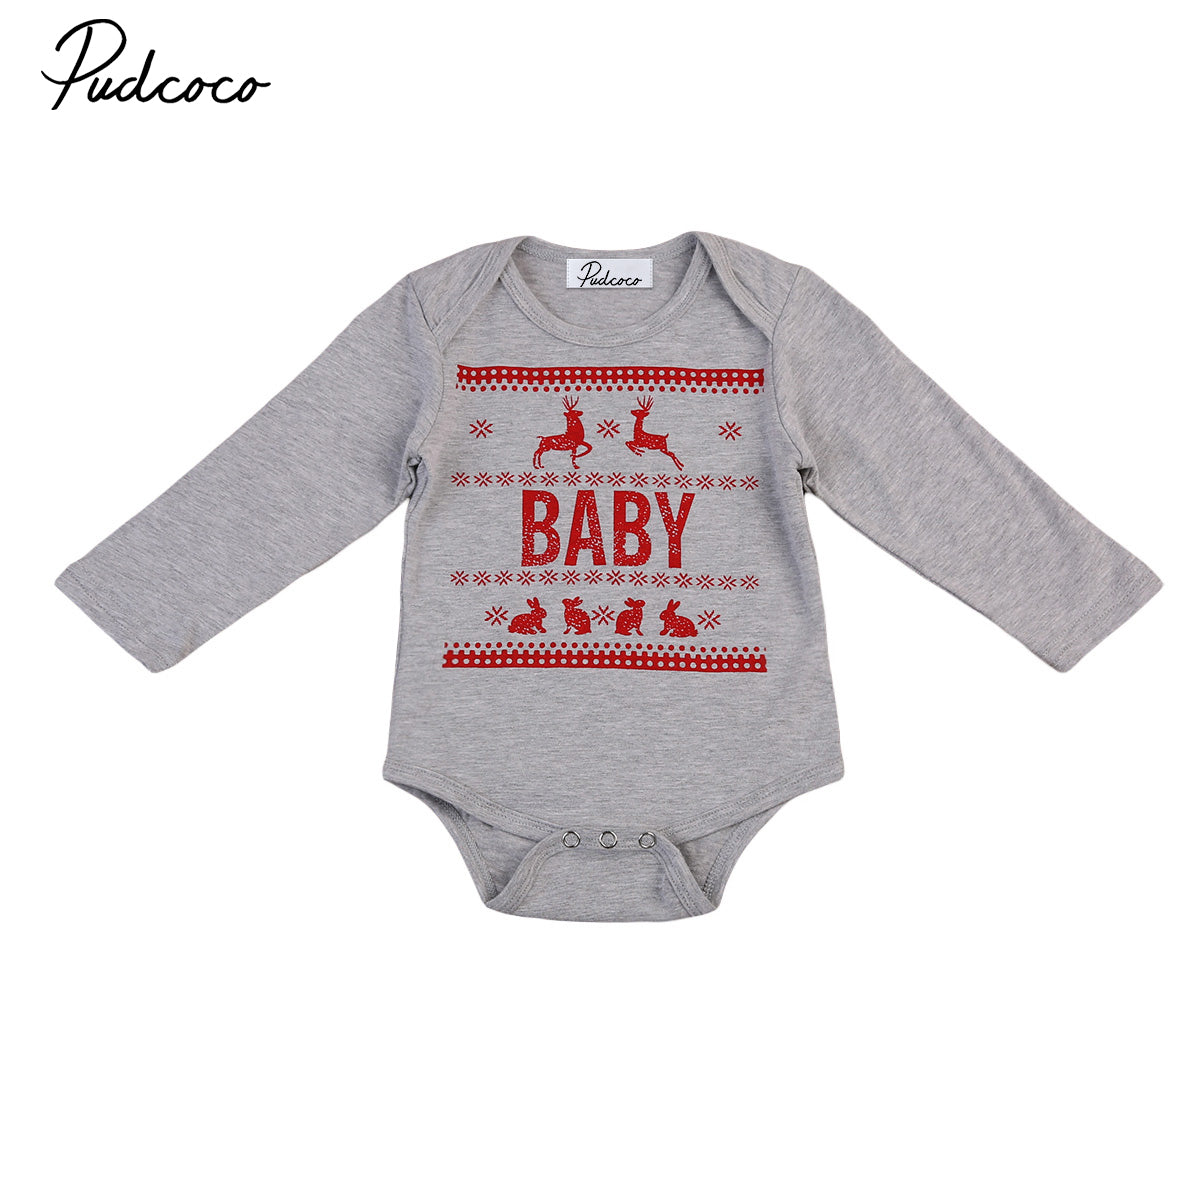 Pudcoco 2019 0-24M Newborn Baby Boys&Girls Cotton Bodysuits Autumn Long Sleeve Christmas Style